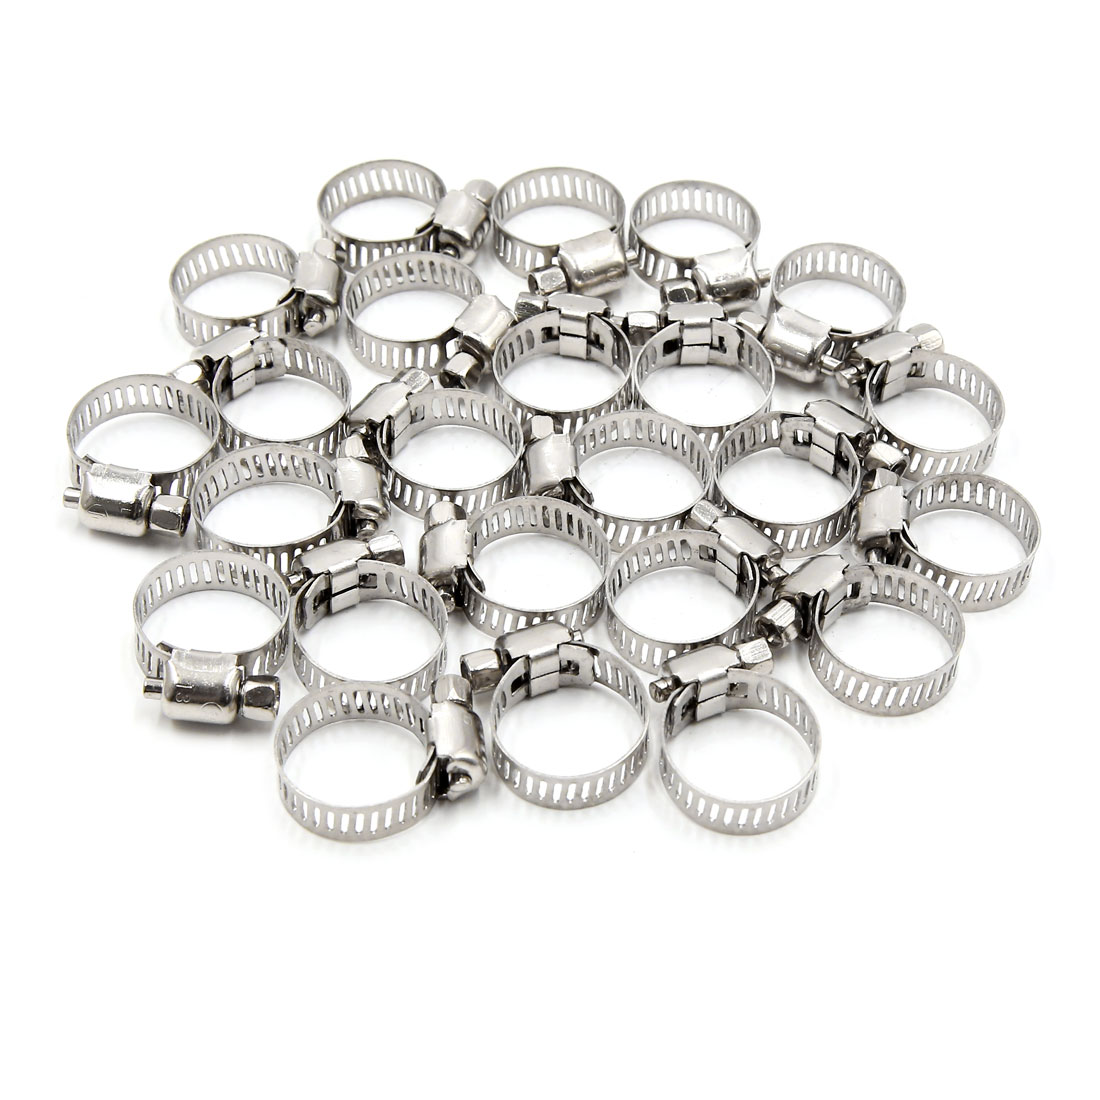 24pcs 13 19mm Stainless Steel Car Vehicle Drive Hose Clamp